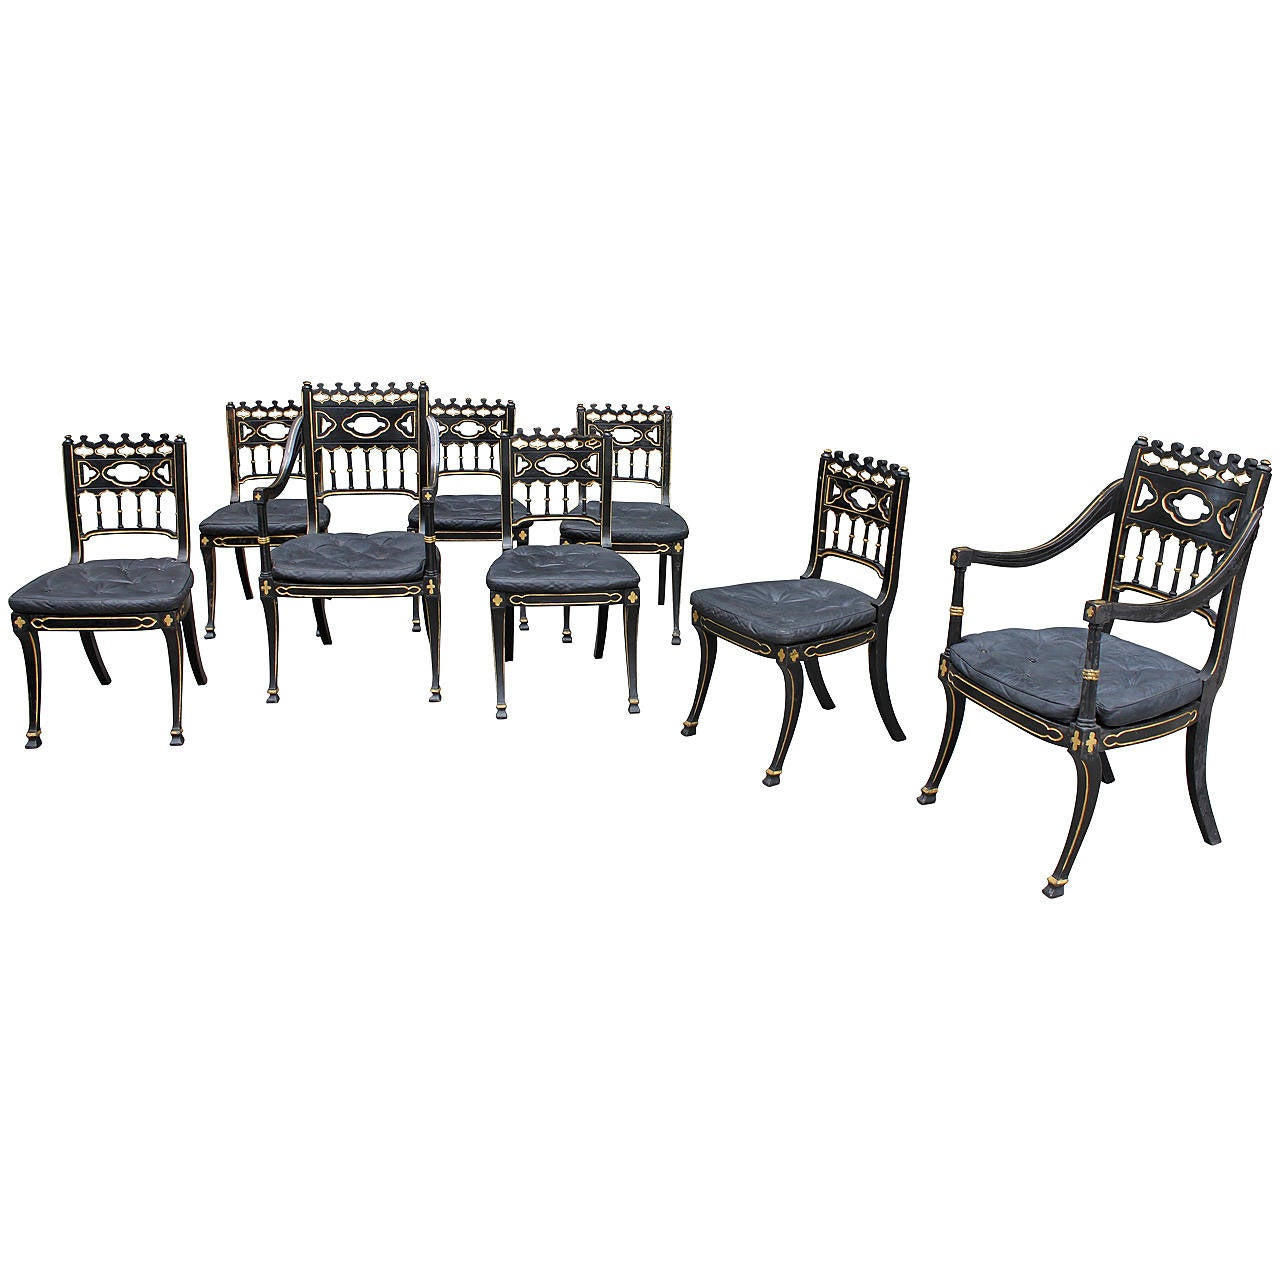 medieval dining chairs patio chair seat cushions gothic style regency set of eight for sale